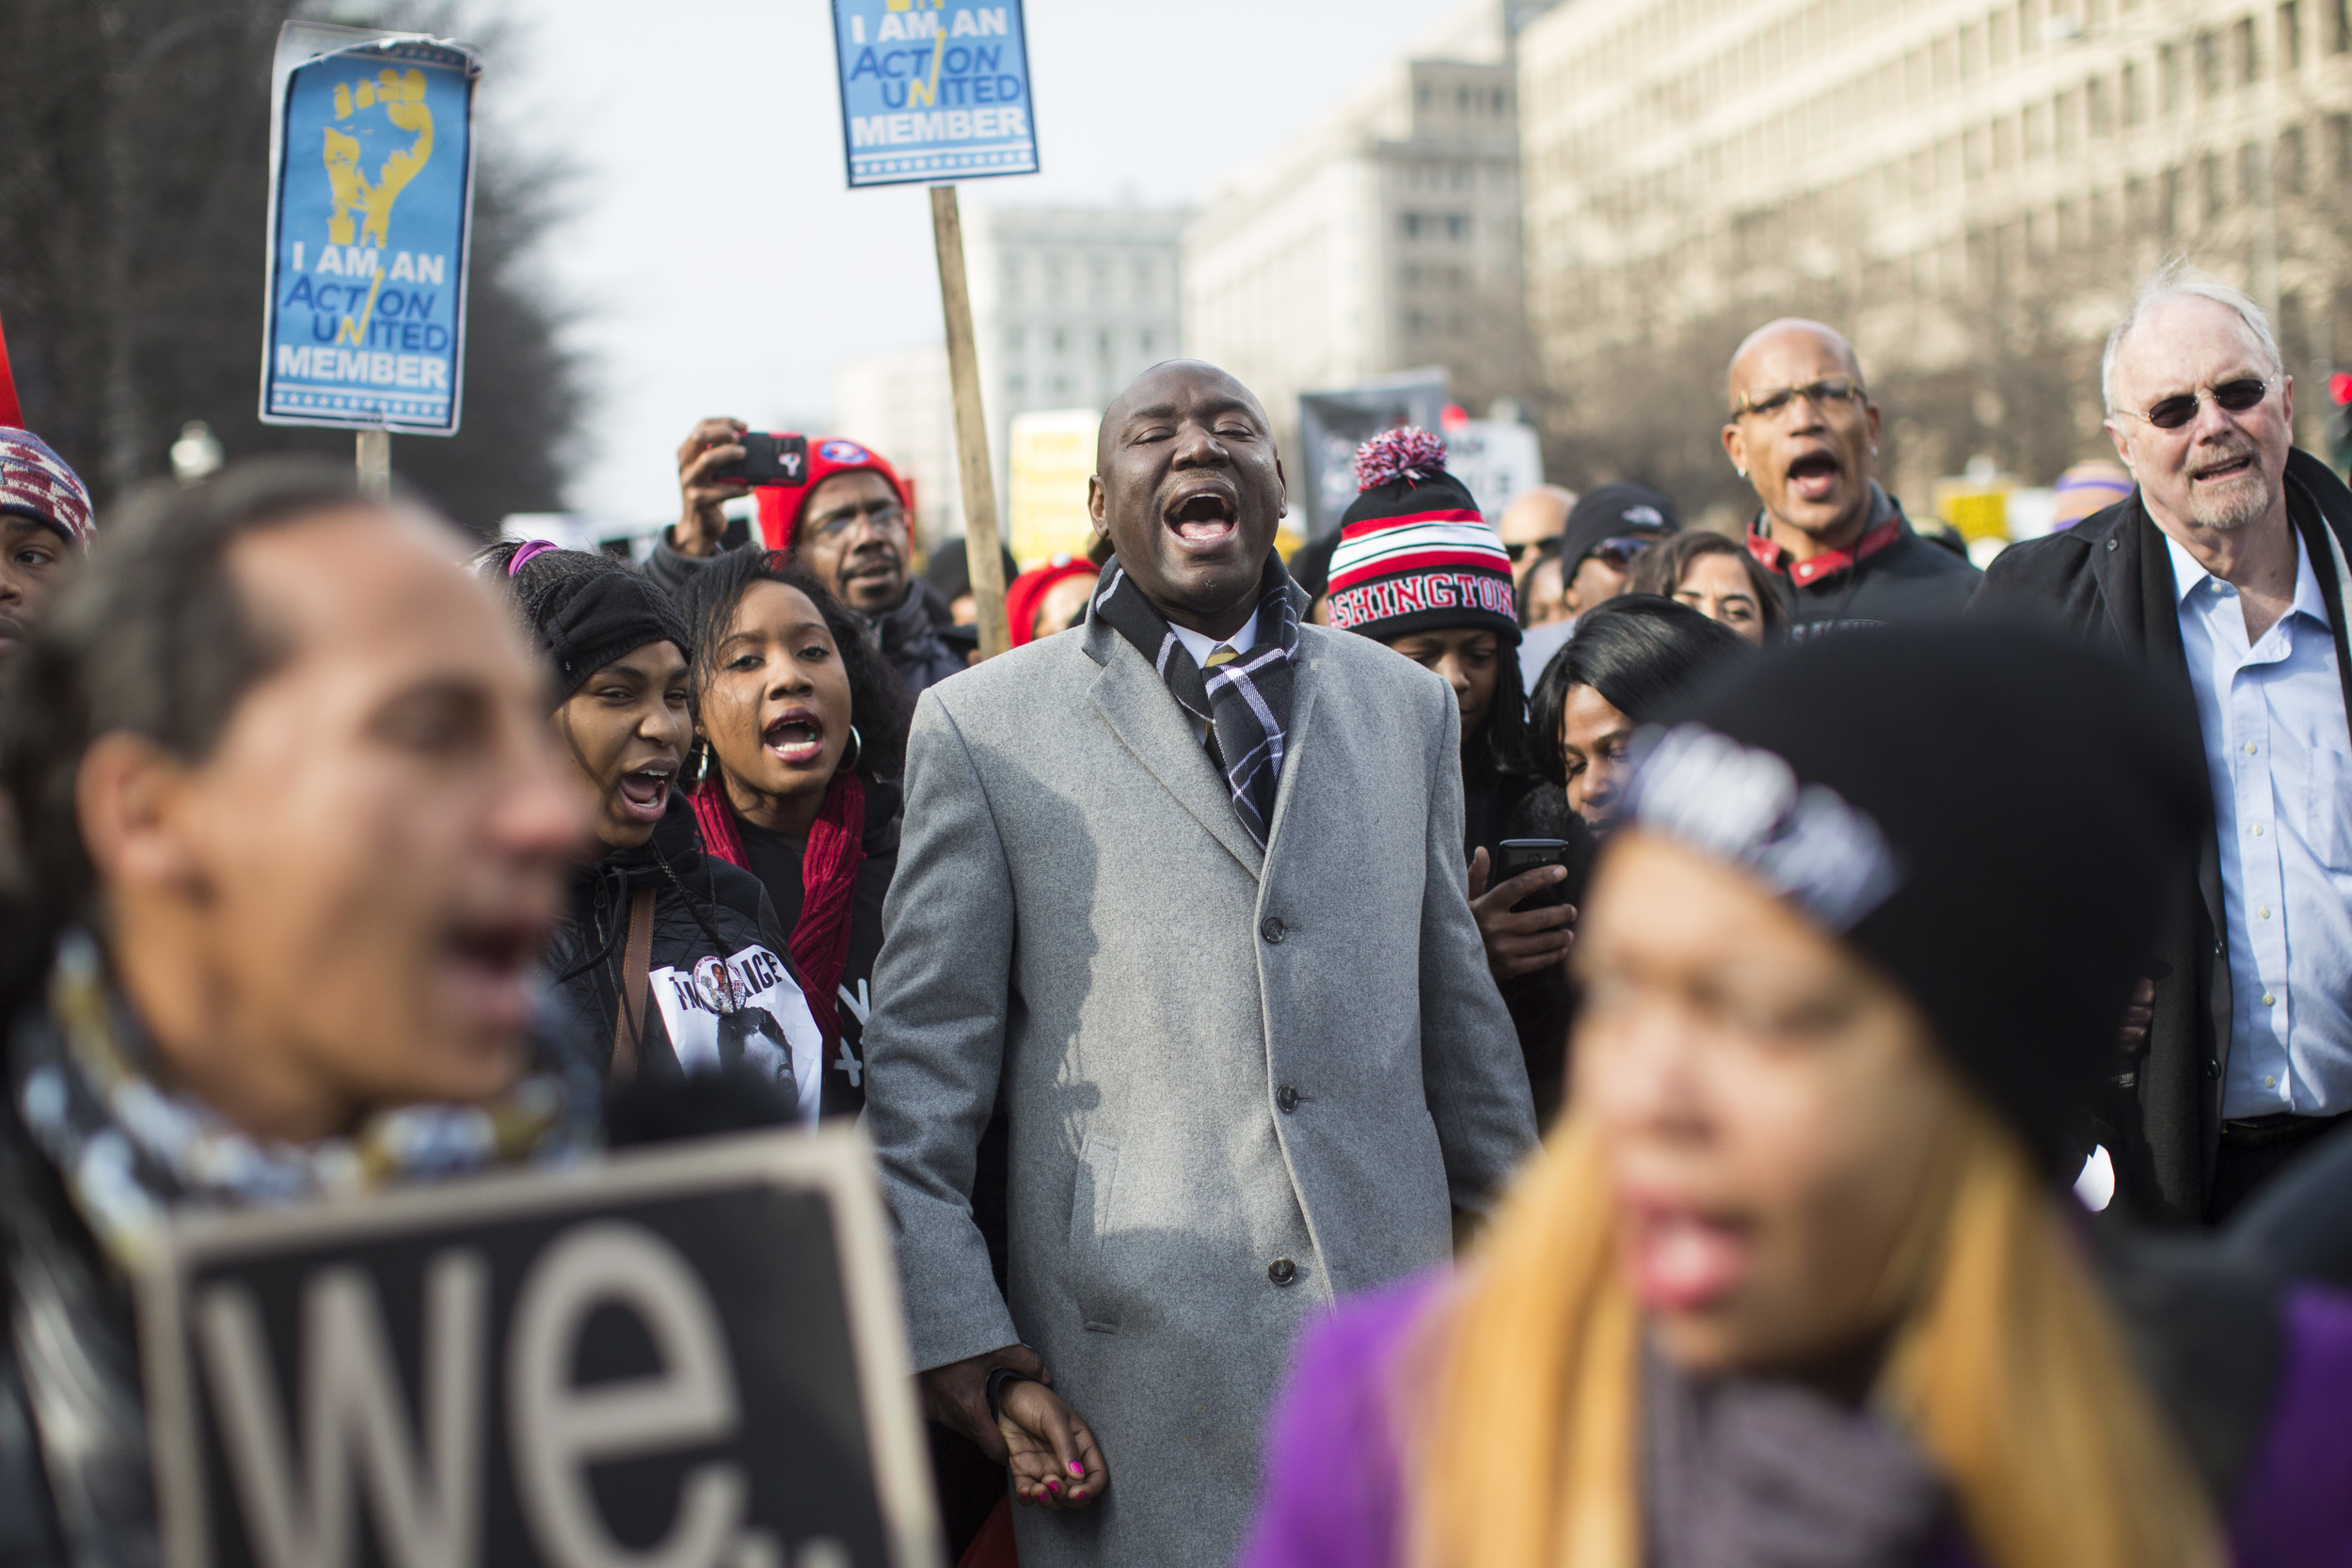 Demonstrators march toward Capitol Hill during the Justice for All march and rally where more than than 10,000 protesters marched in an effort to bring attention to the deaths of unarmed black men at the hands of police in Washington, DC on Saturday December 13, 2014.